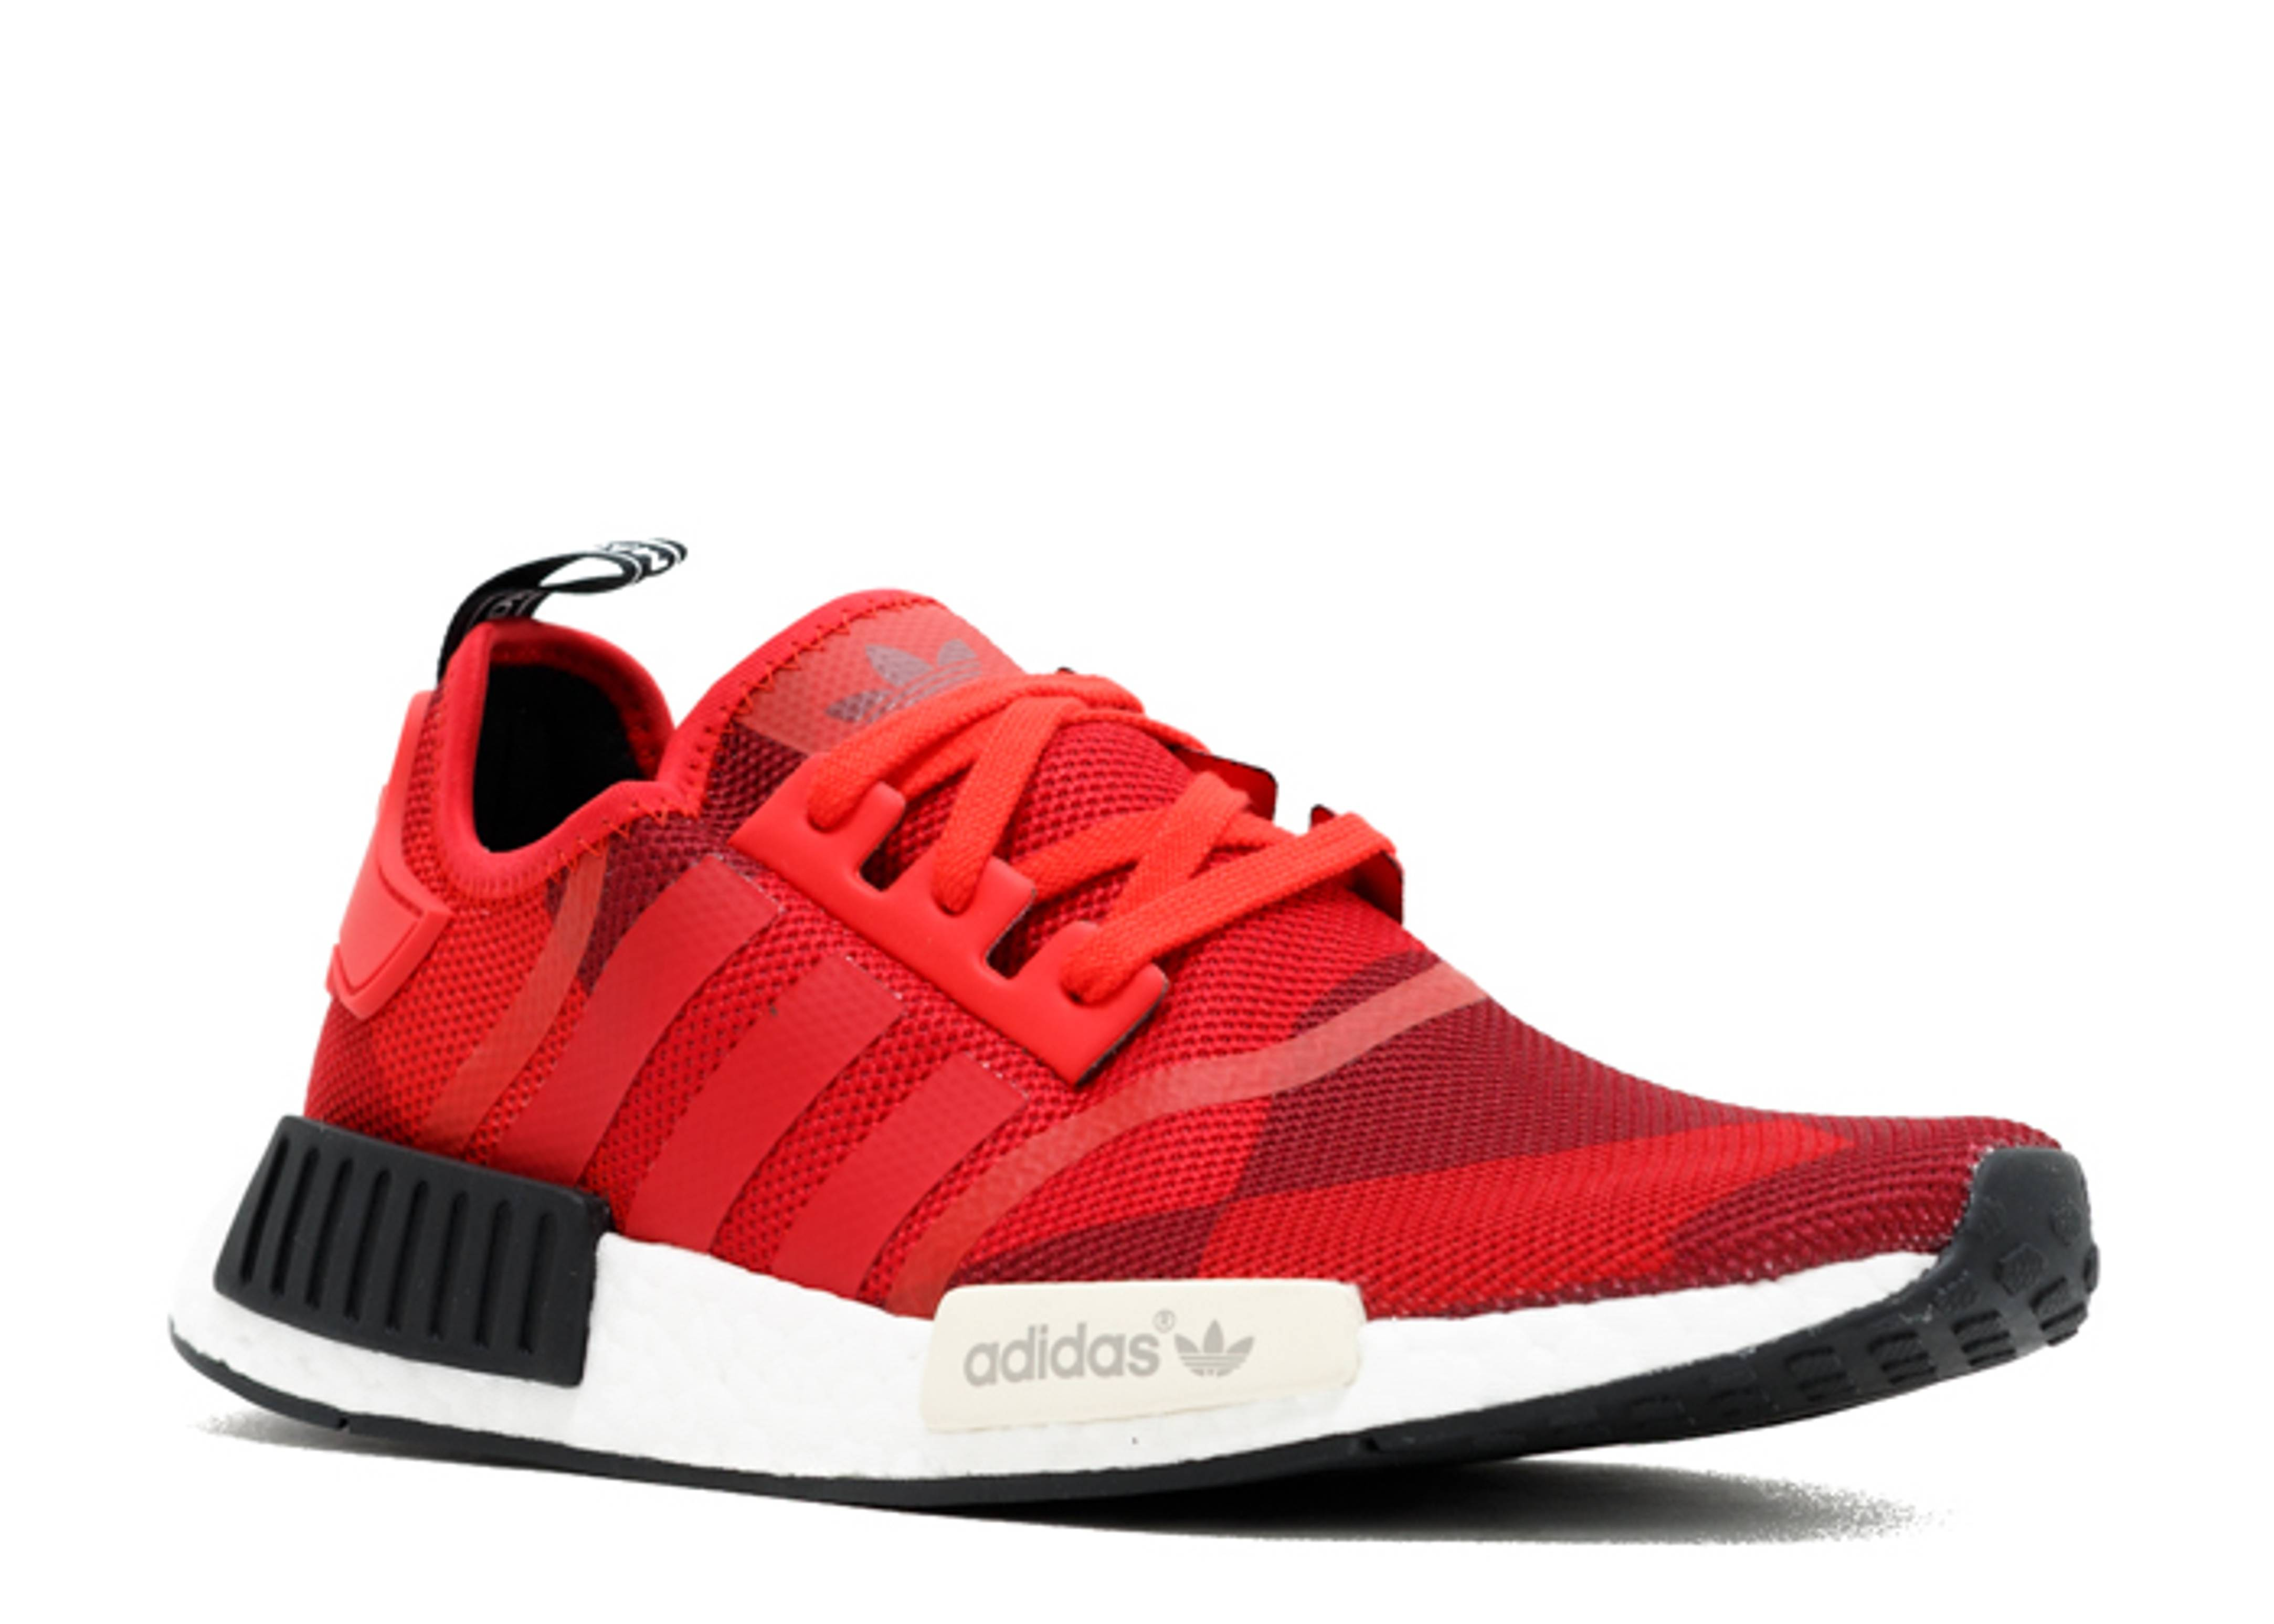 a8f3baf09 Adidas Nmd R1 Black White Red amstructures.co.uk